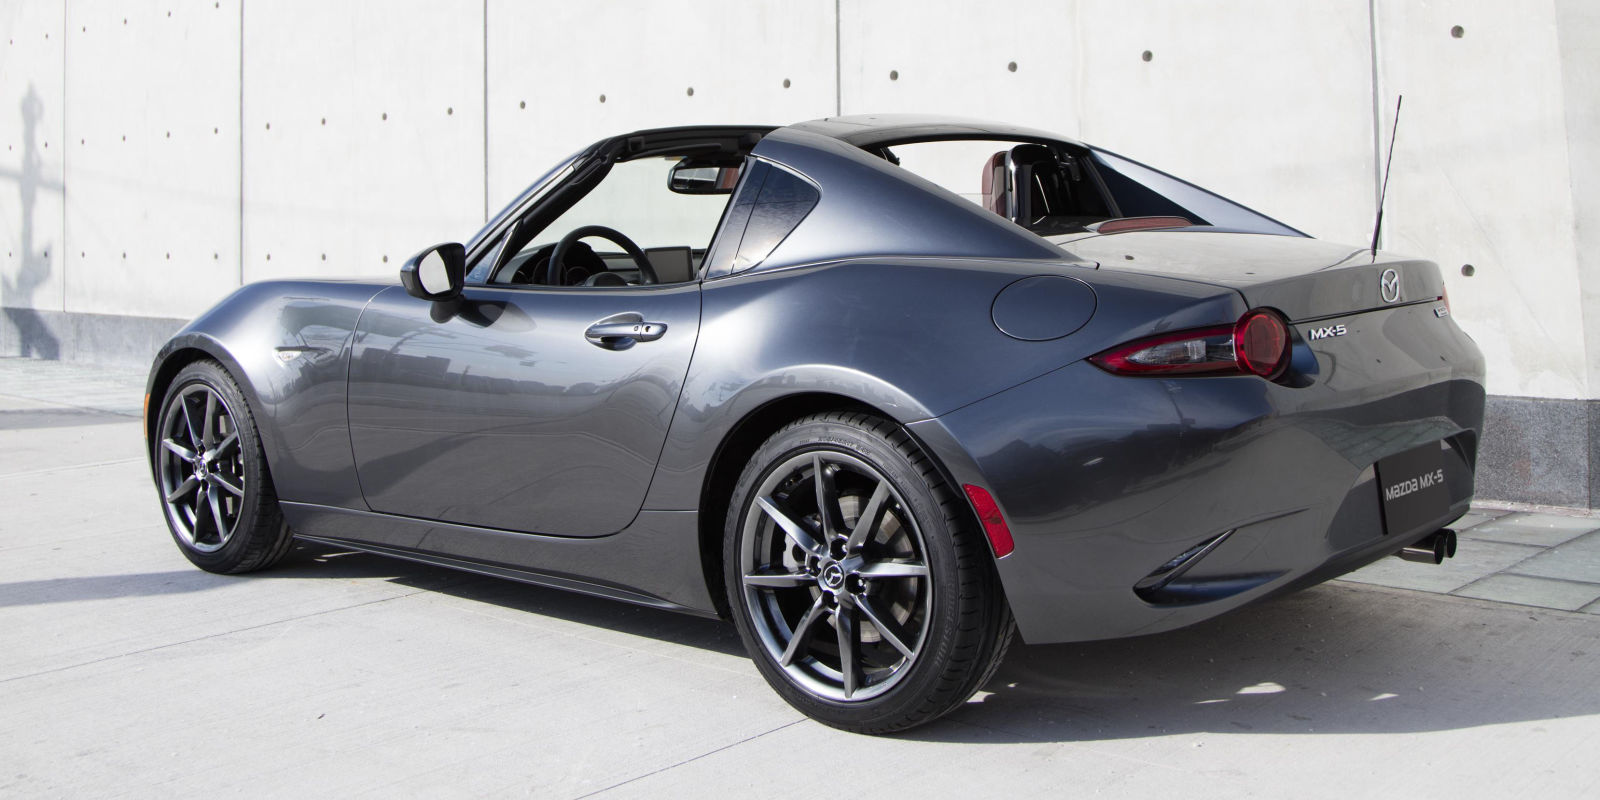 2017 mazda mx 5 rf pricing miata hardtop launch edition. Black Bedroom Furniture Sets. Home Design Ideas